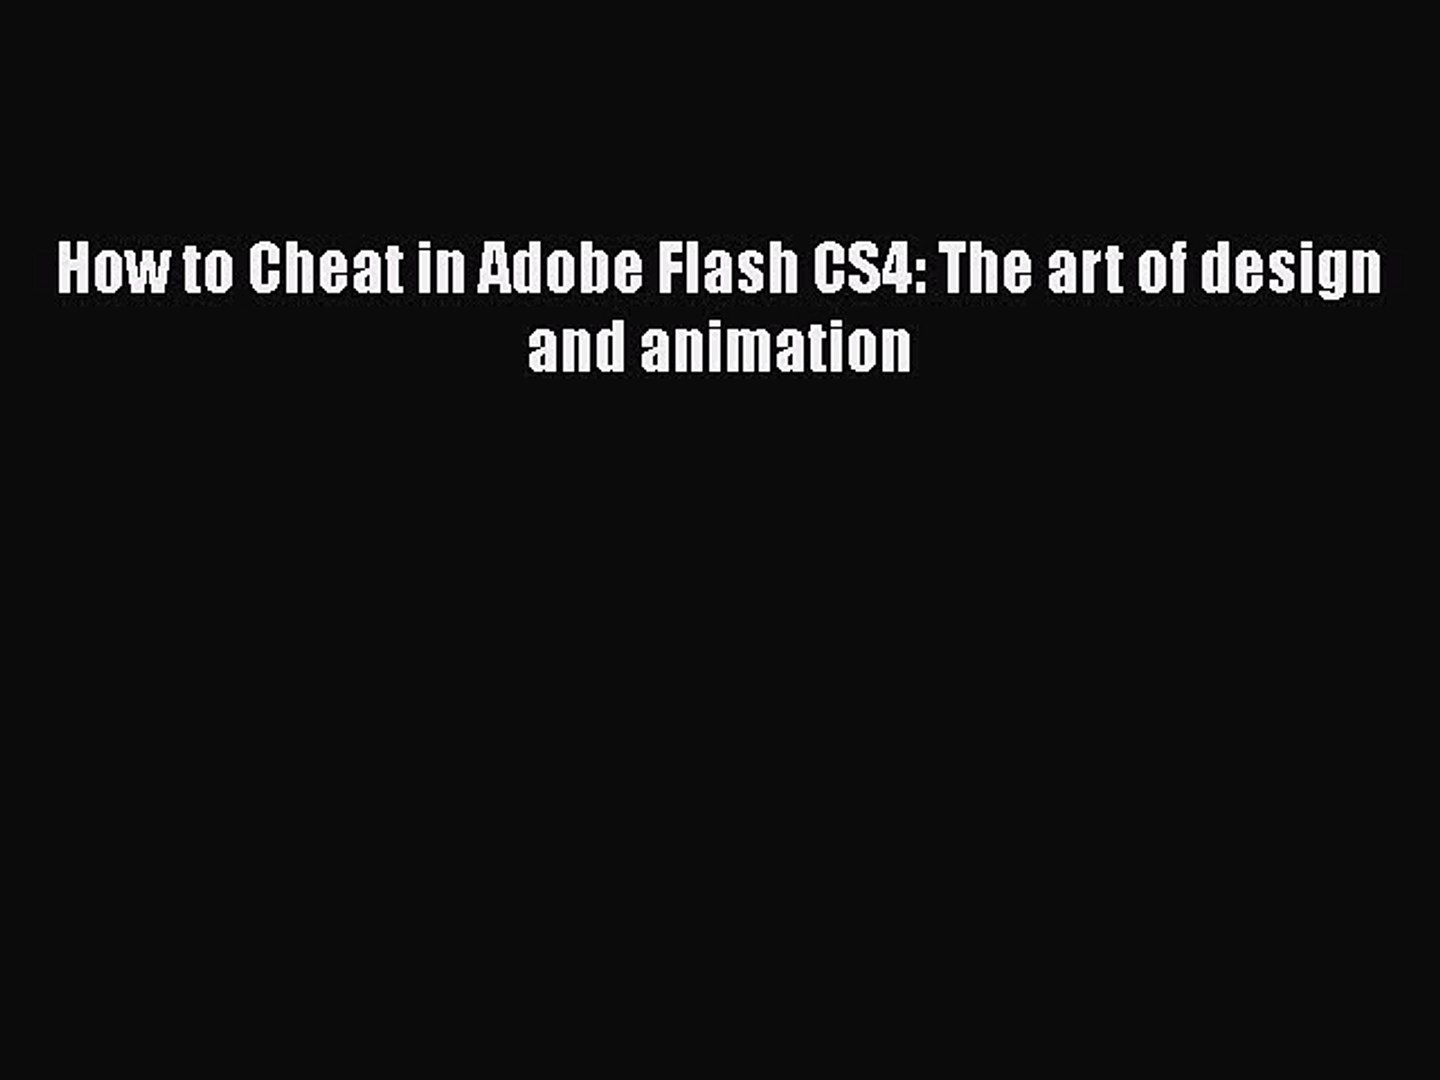 How to Cheat in Adobe Flash CS3 The art of design and animation